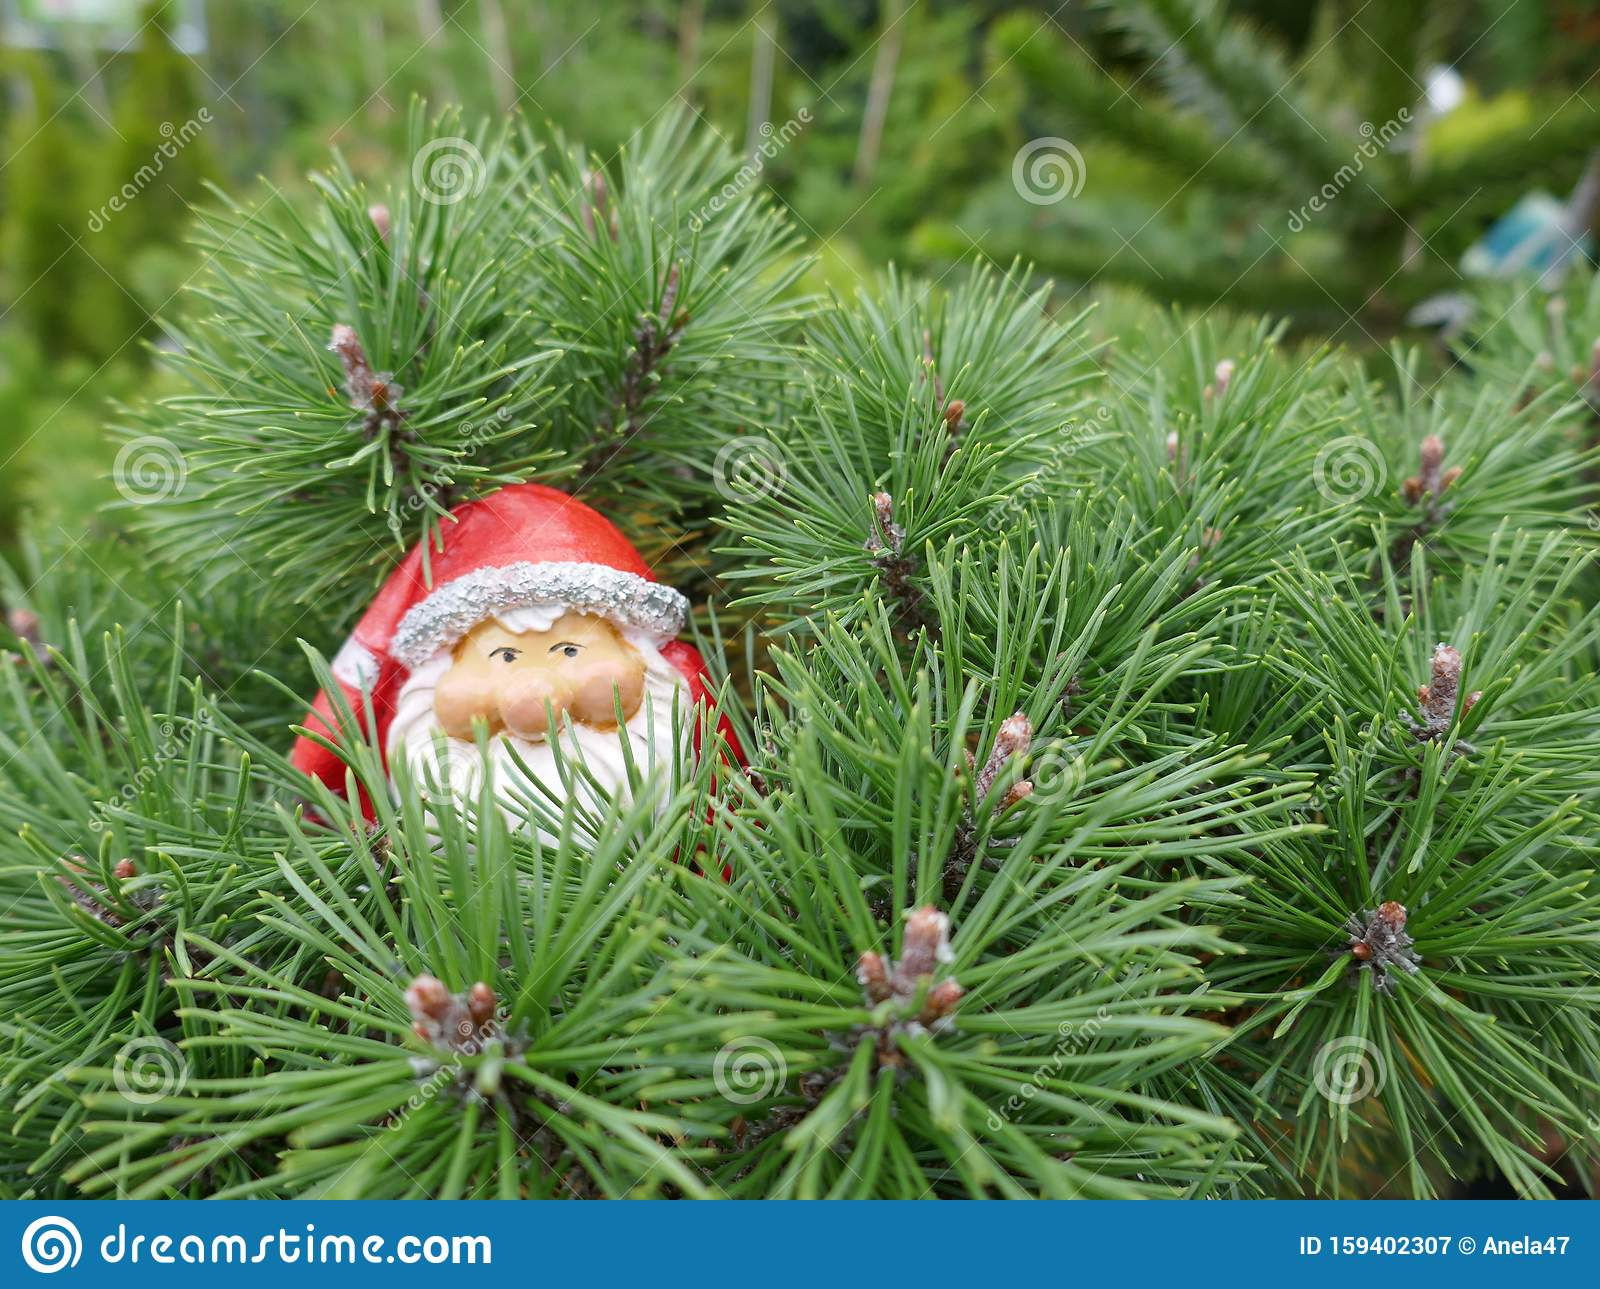 Santa Claus In The Forest A Cute Little Garden Gnome In Santa Claus Costume Hides In The Forest Between Pine Branches Stock Image Image Of Advent Hides 159402307